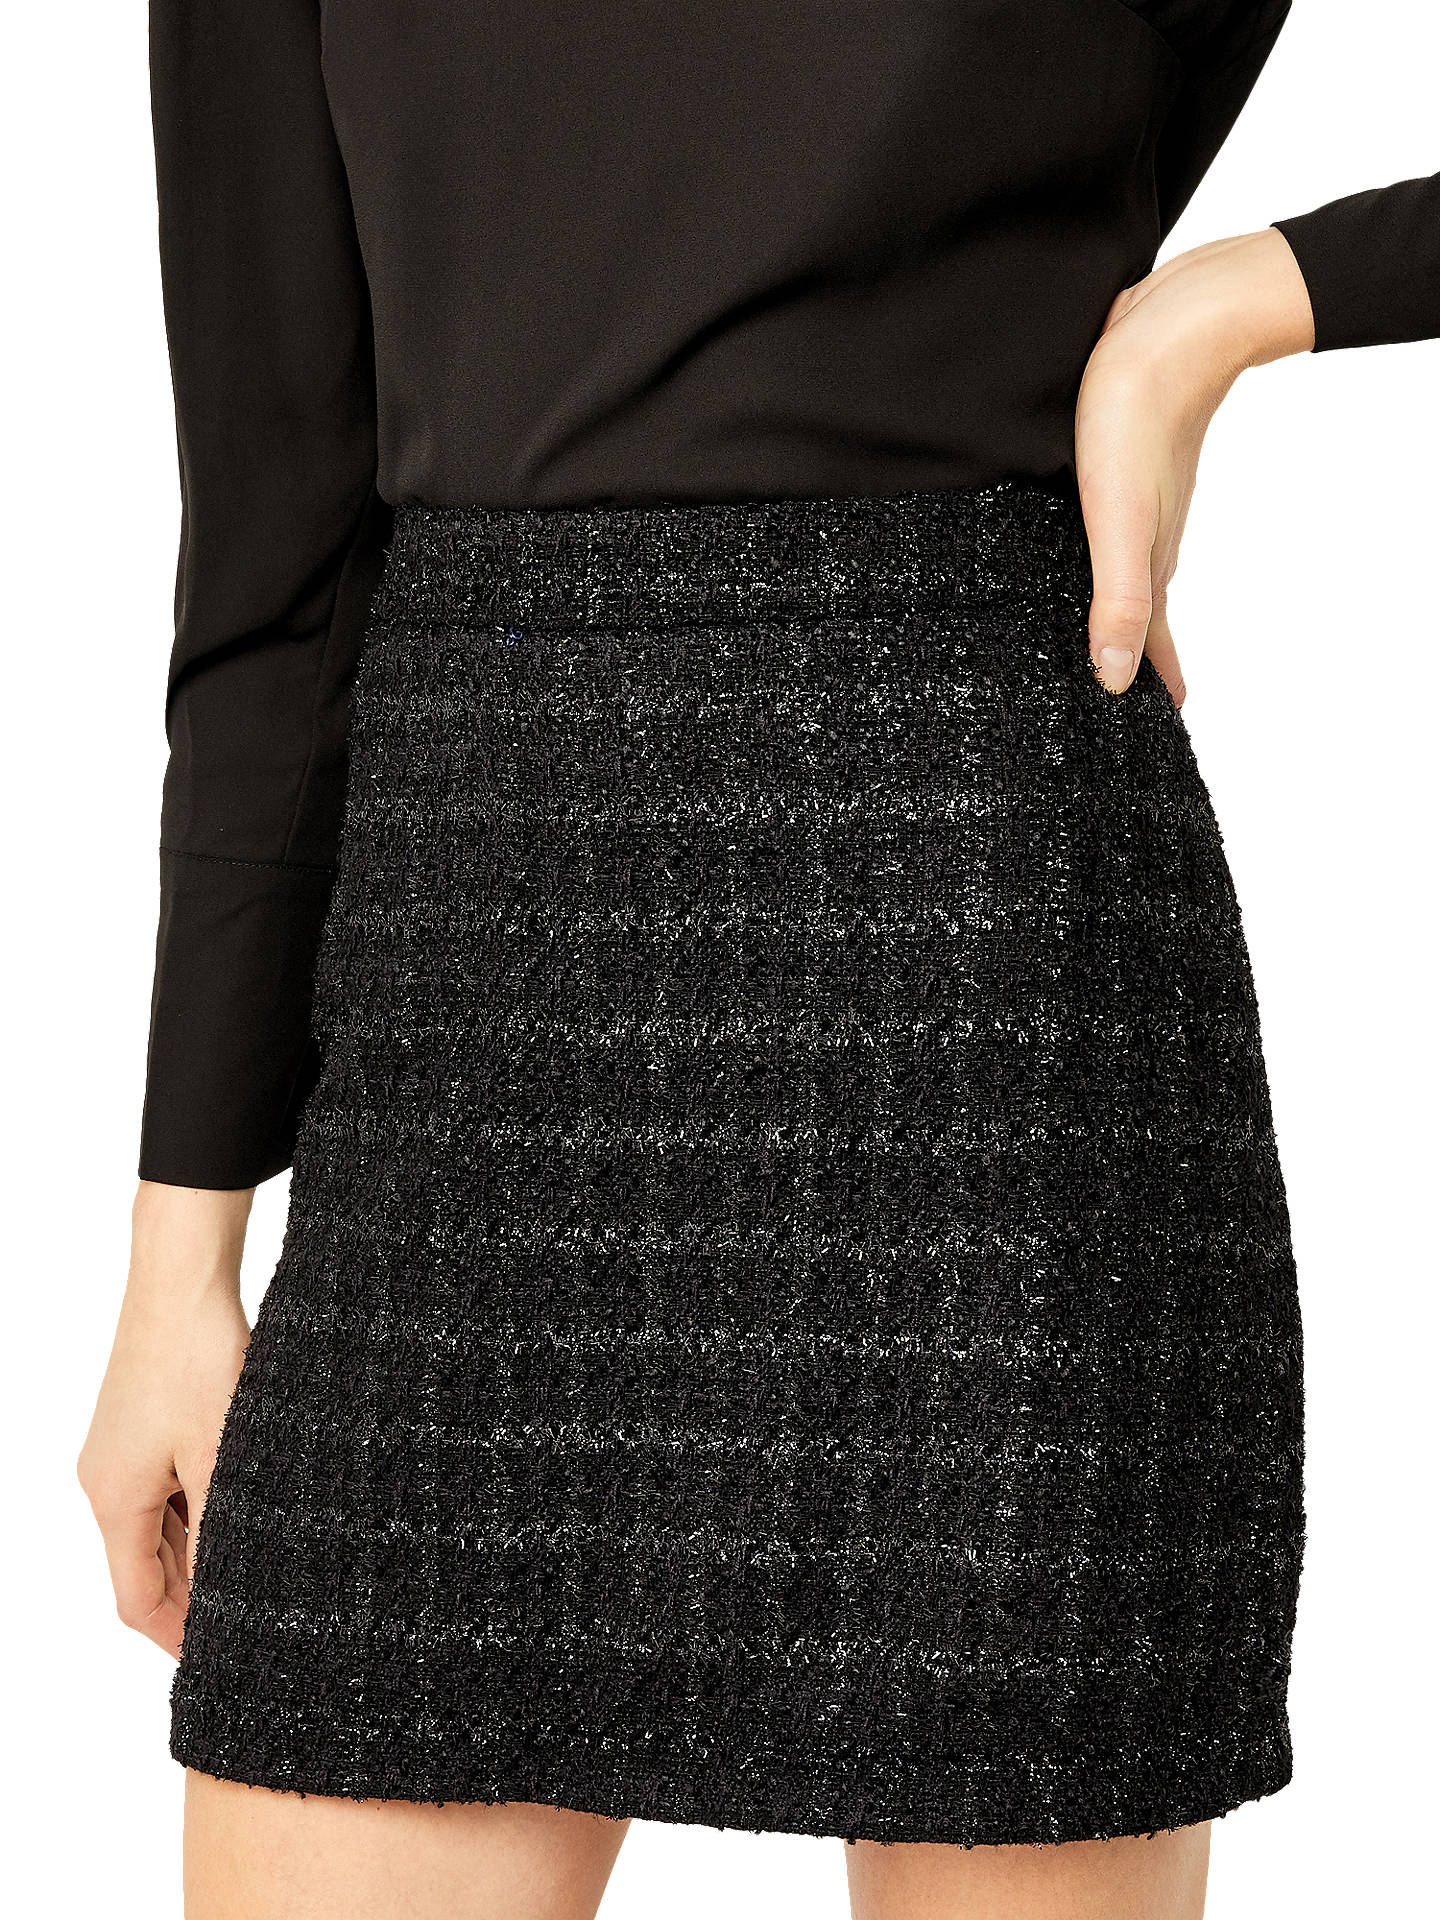 905f751aeba1bf Buy Warehouse Sparkle Tweed Skirt, Black, 6 Online at johnlewis.com ...